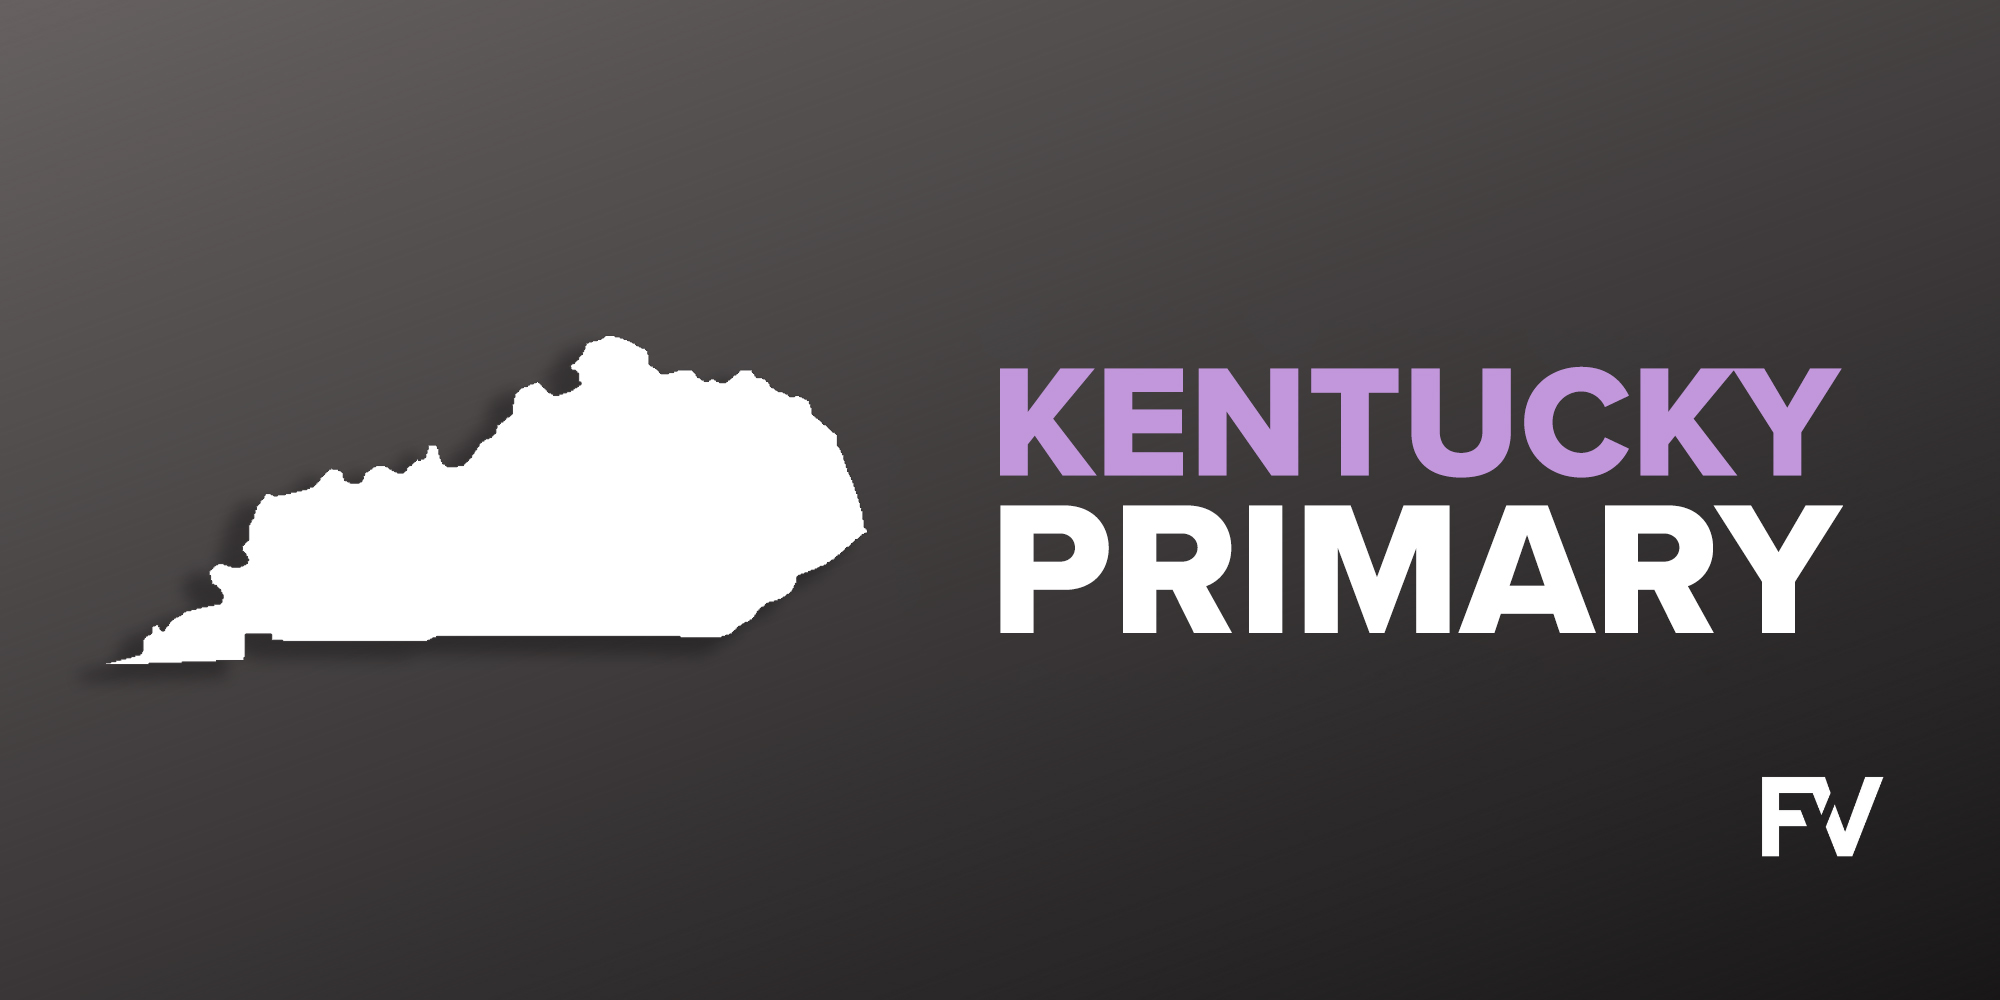 Kentucky Senate Primary Highlights Need for Ranked Choice Voting